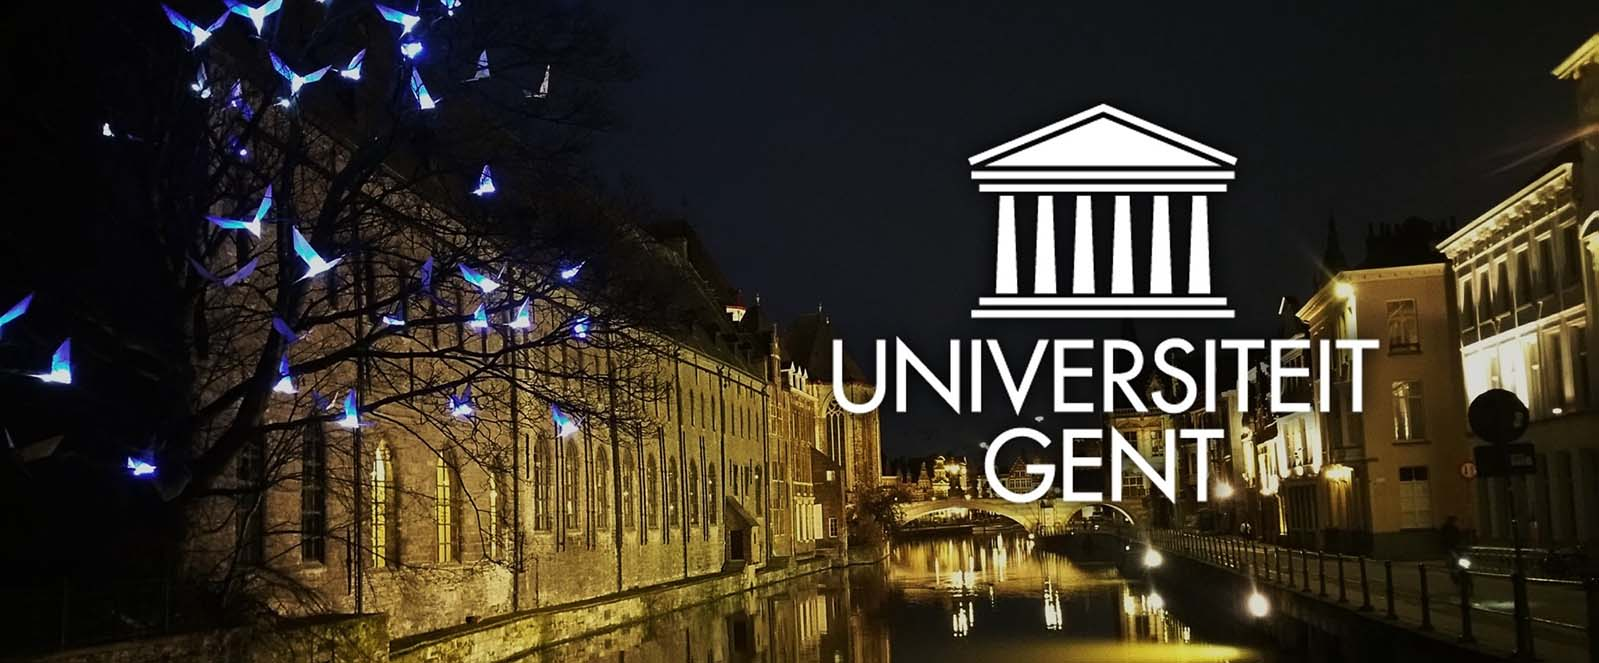 Image of Ghent City 2019 related to Luximprint blogpost about Photonics 2018 Event at Ghent University